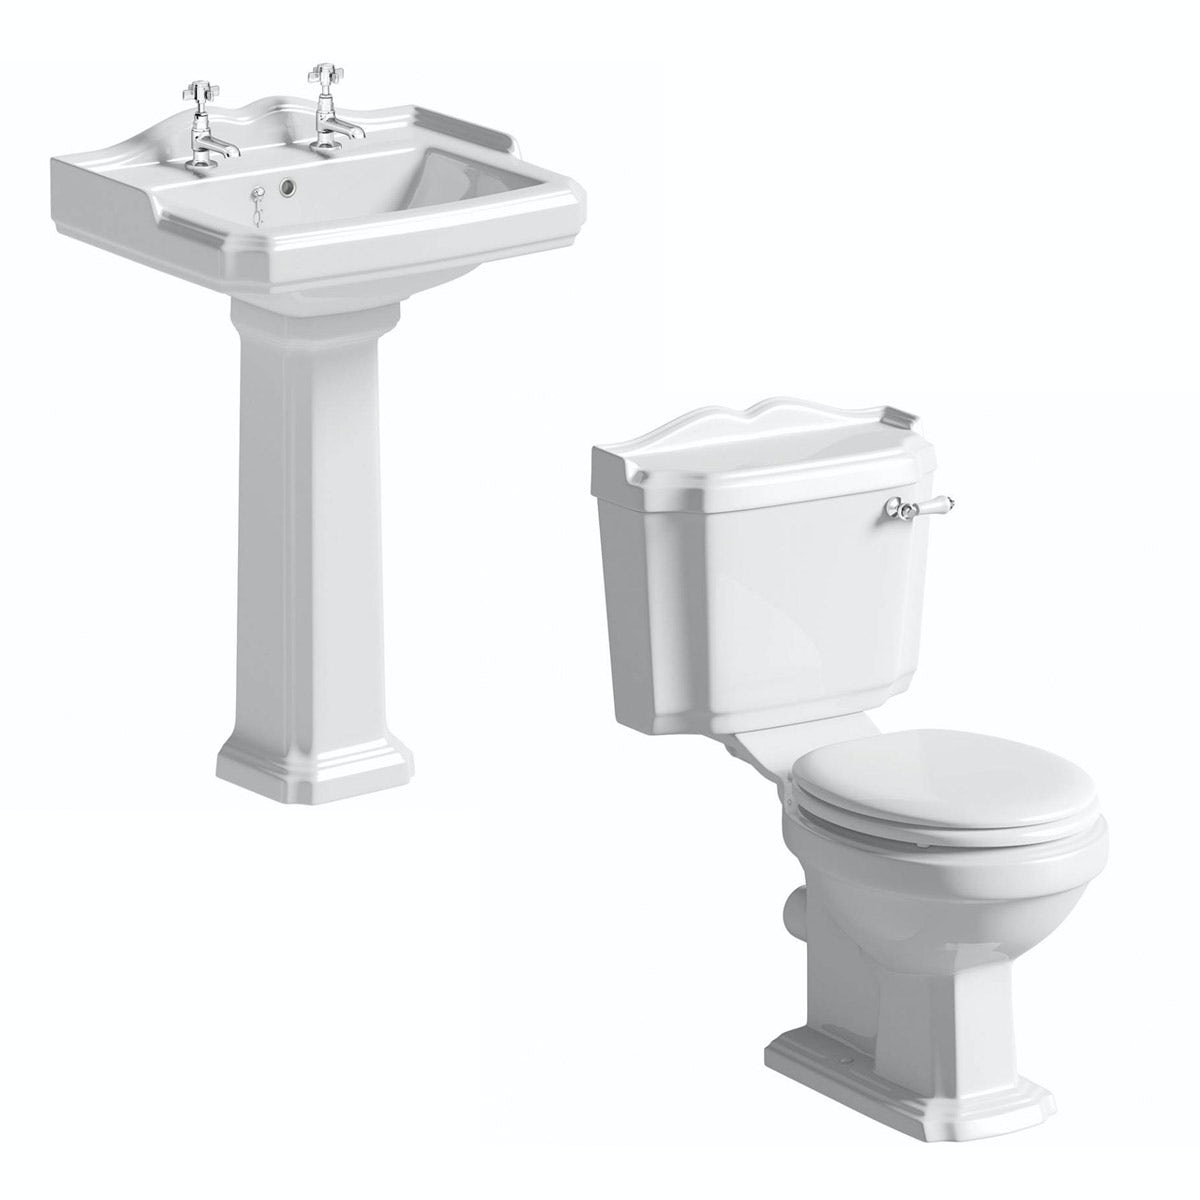 The Bath Co Winchester Cloakroom Suite With White Seat And Full Bathroom Sink Drain Plumbing Diagram Bing Images Pedestal Basin 600mm